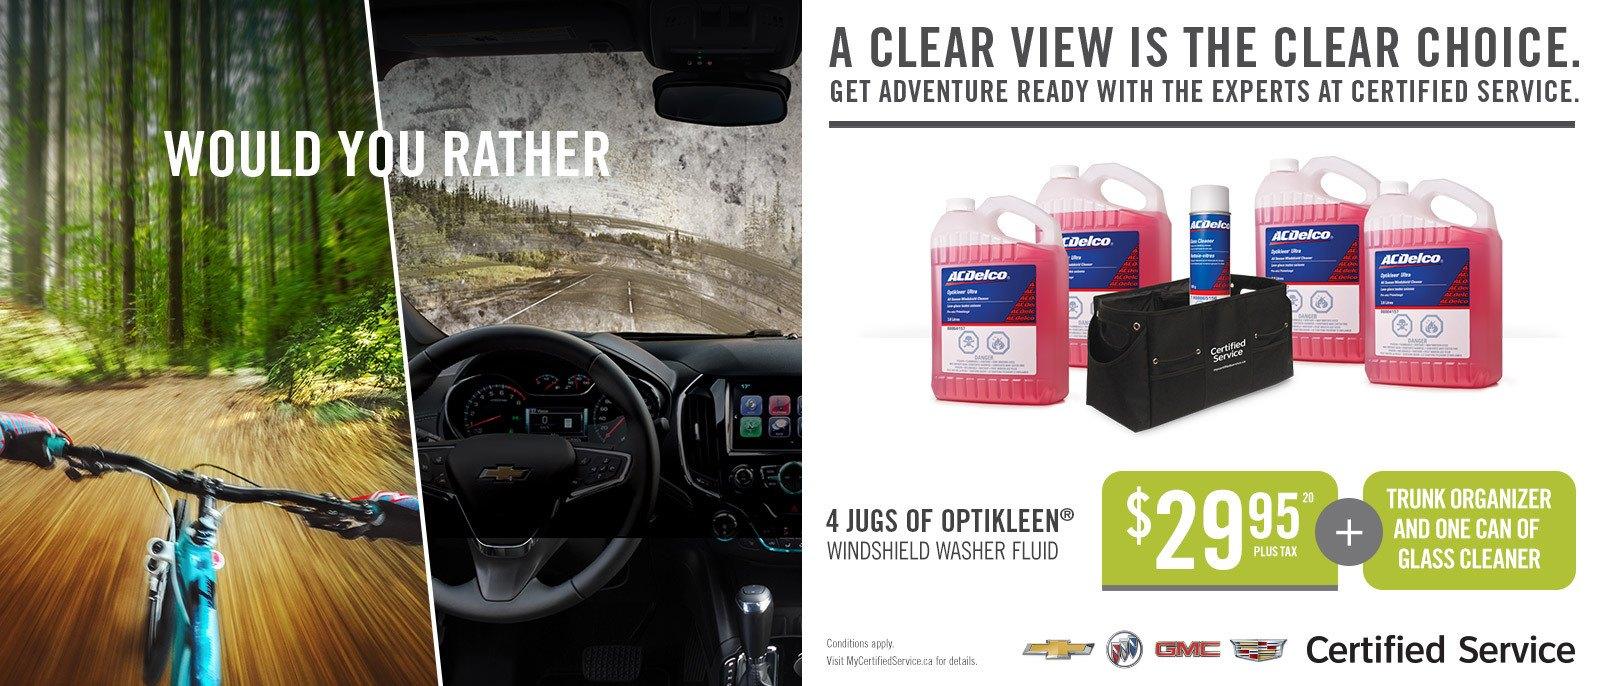 OptiKleen Window Washer Fluid